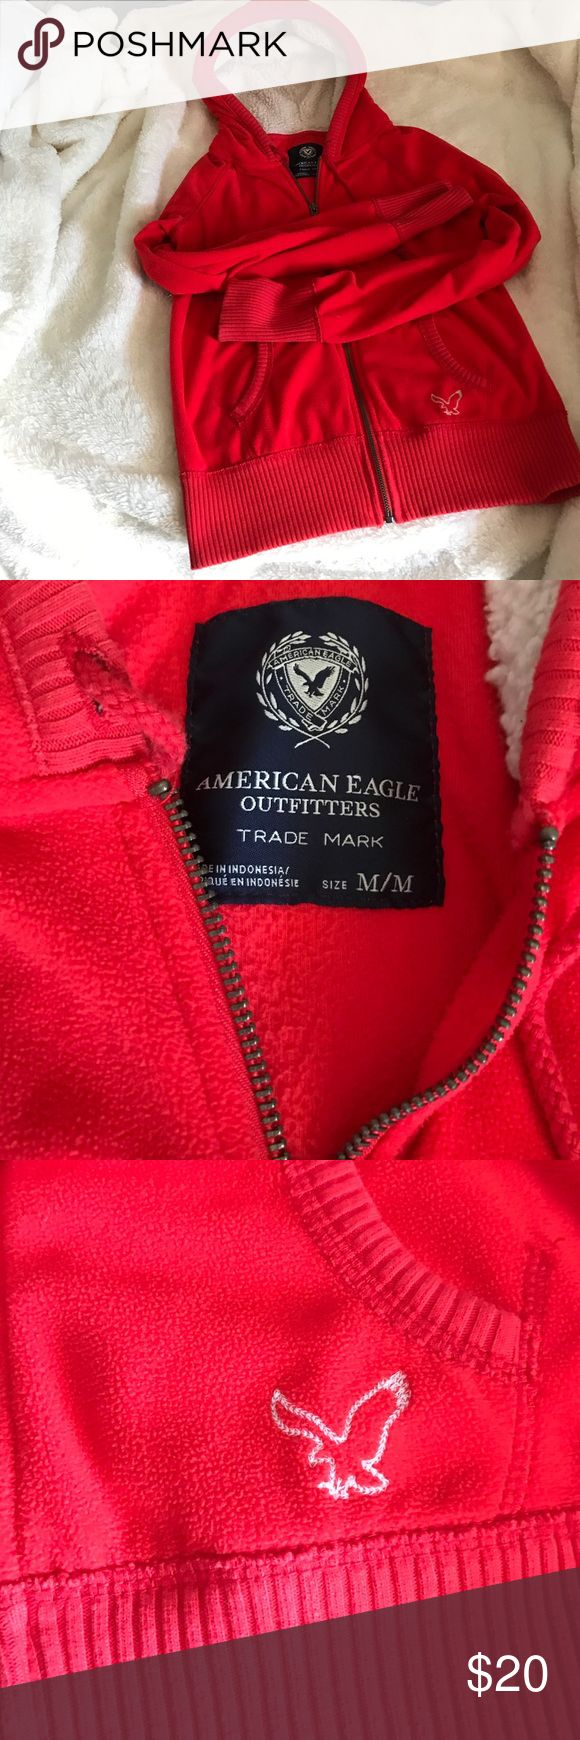 American Eagle hoodie Preloved soft red hoody 💕 American Eagle Outfitters Sweaters